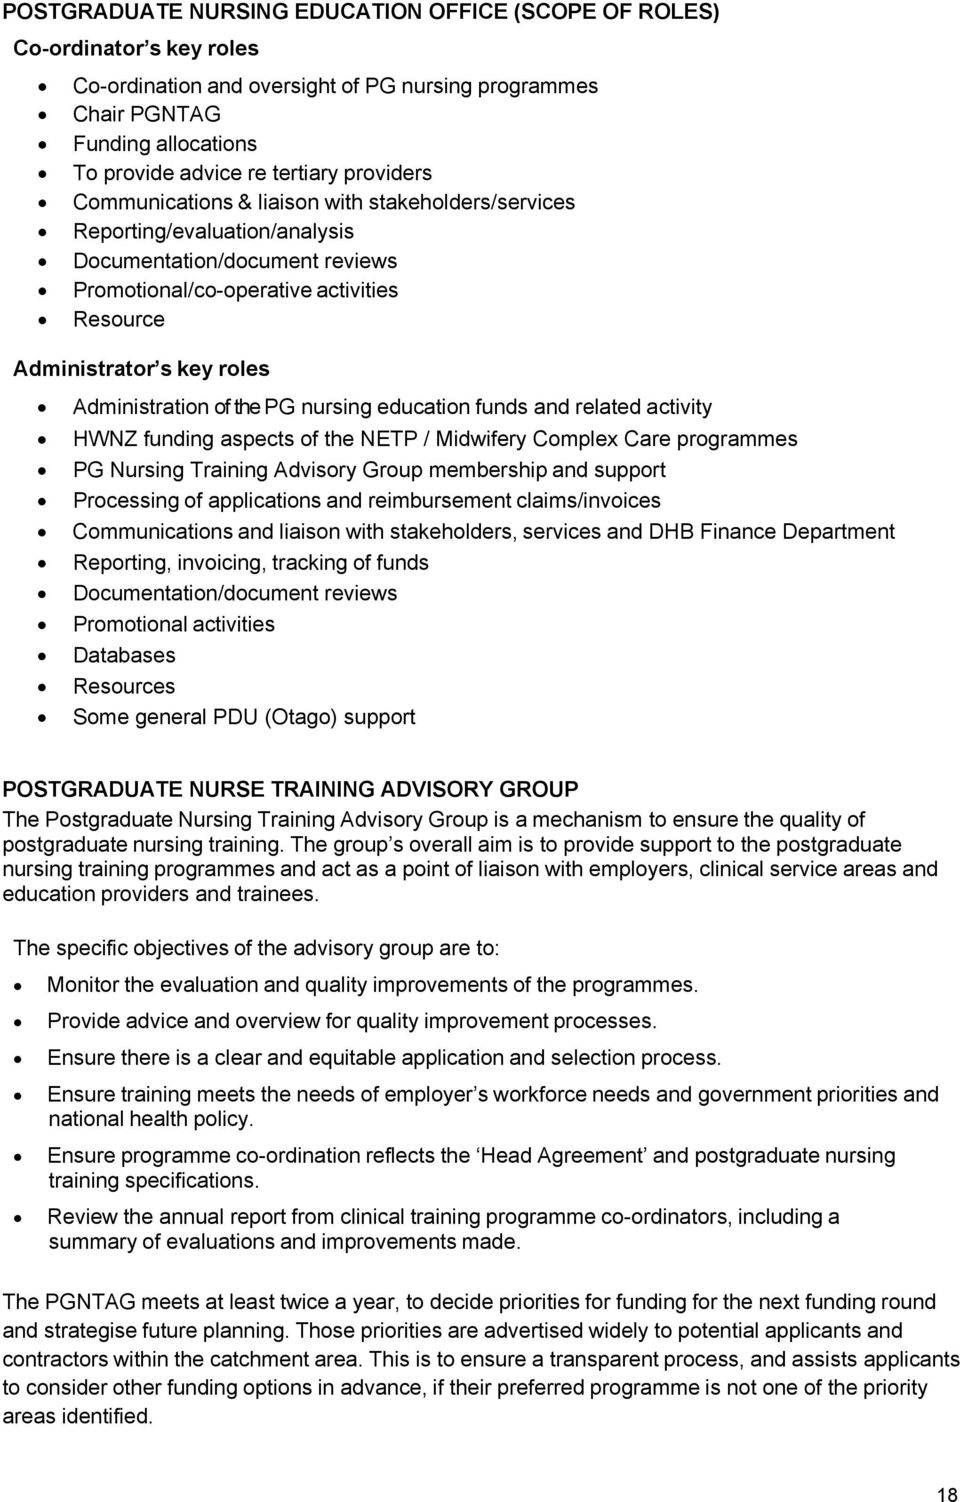 Administration of the PG nursing education funds and related activity HWNZ funding aspects of the NETP / Midwifery Complex Care programmes PG Nursing Training Advisory Group membership and support